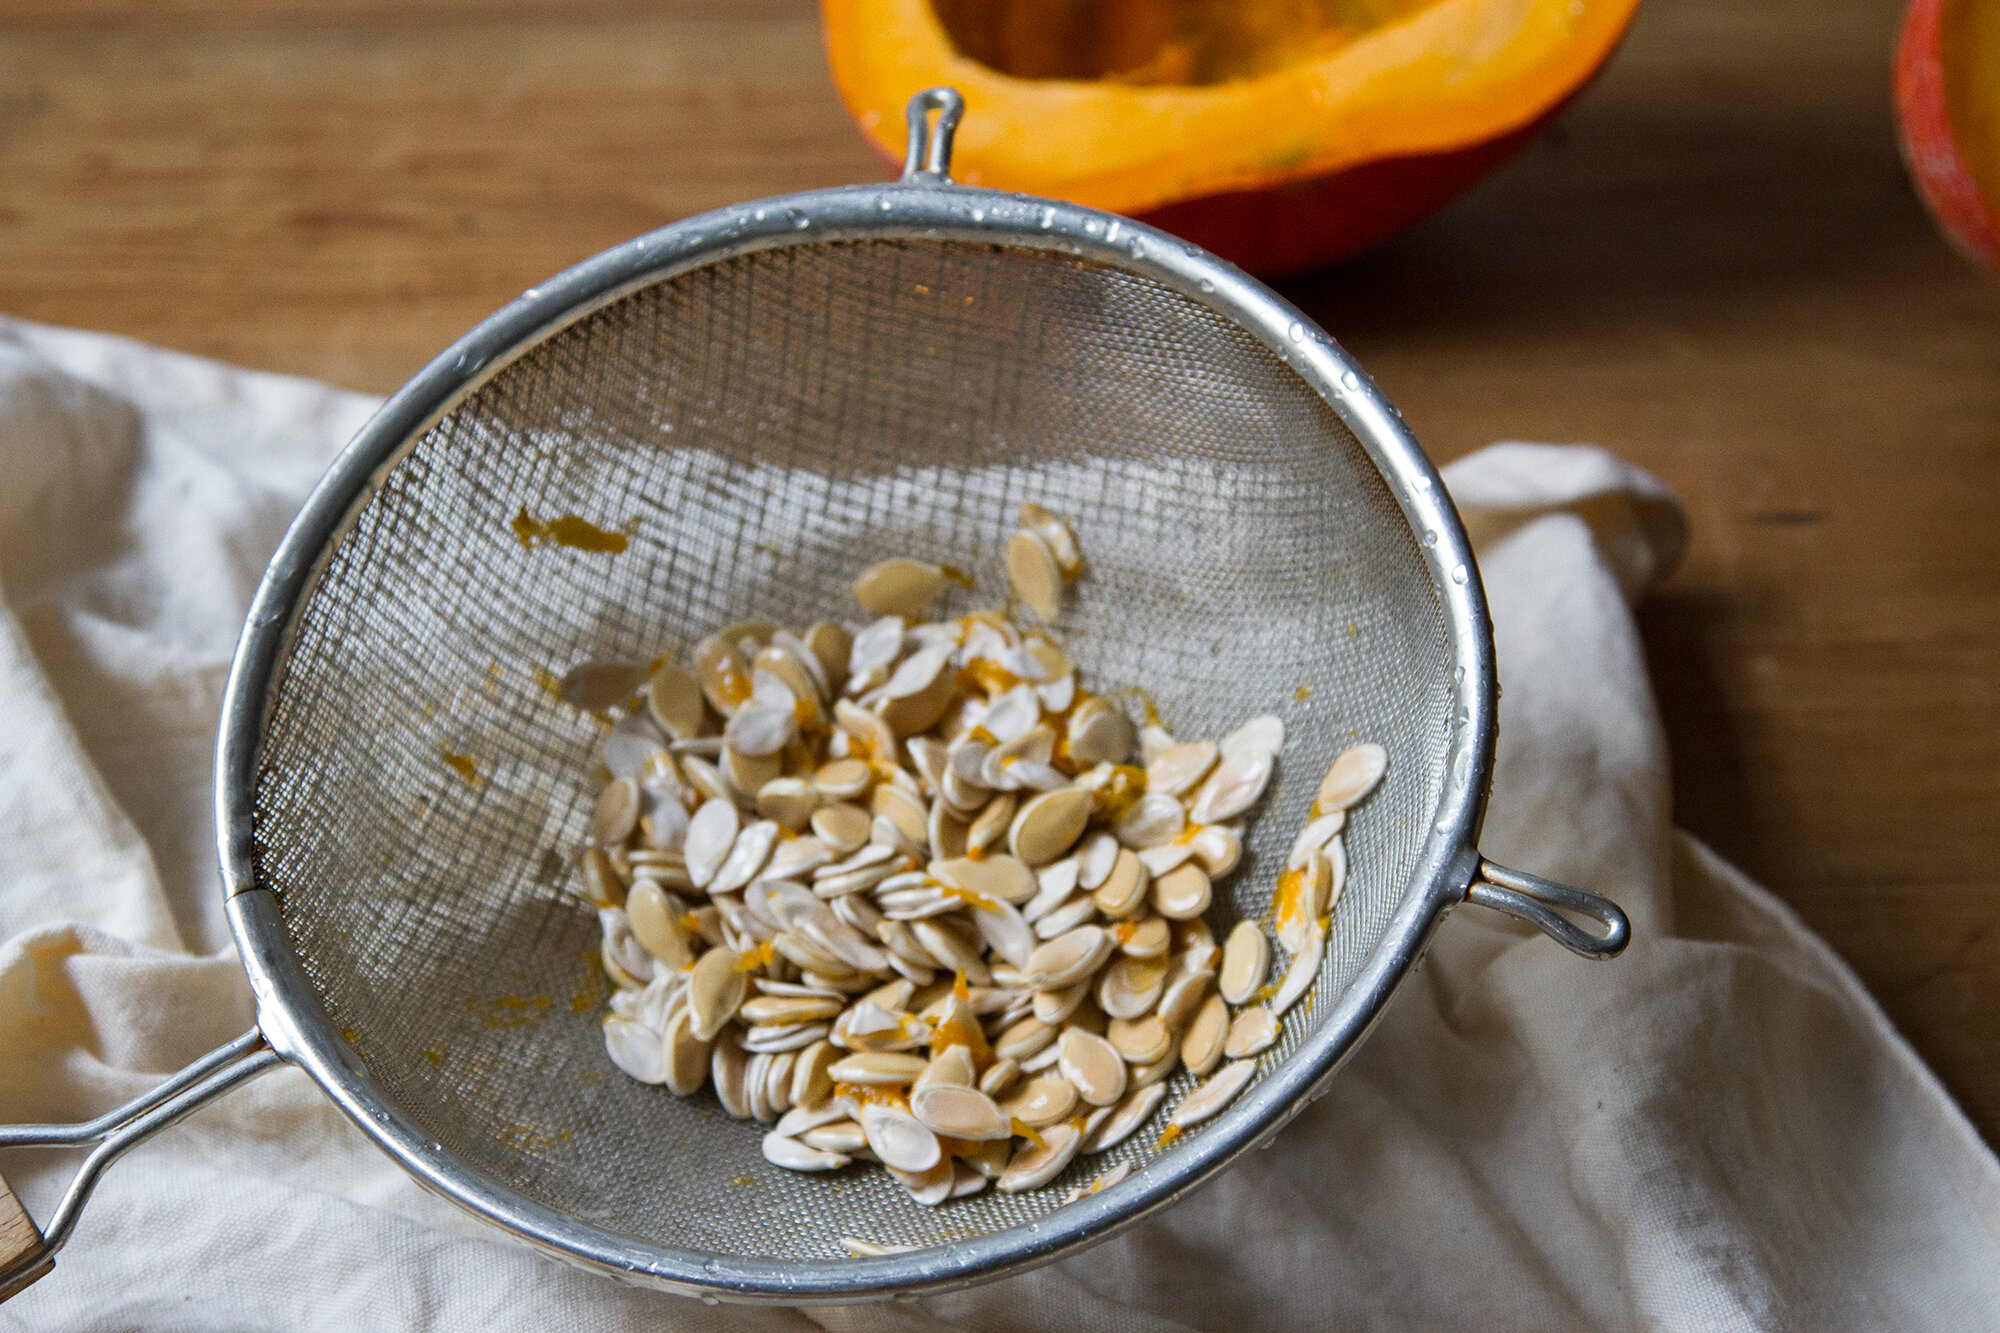 roasted squash seeds | reading my tea leaves